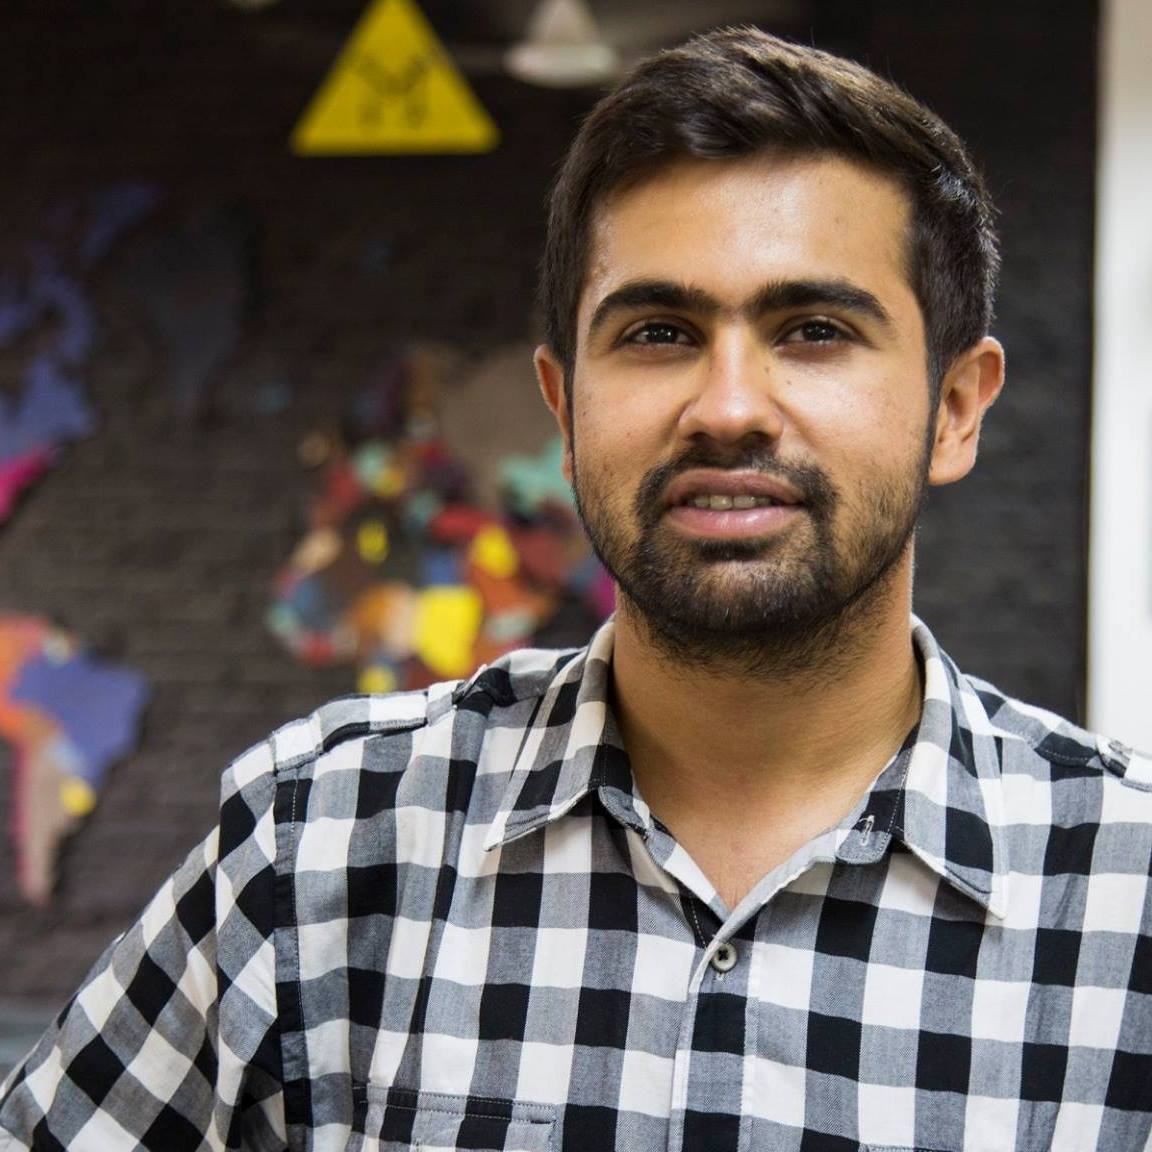 Vaibhav Chhabra is a mechanical engineer by education but a carpenter by passion. After graduating from Boston University, Vaibhav returned to India and founded Makers Asylum - a community space focussed on fostering innovation through hands on learning.     vaibhav@makersasylum.com